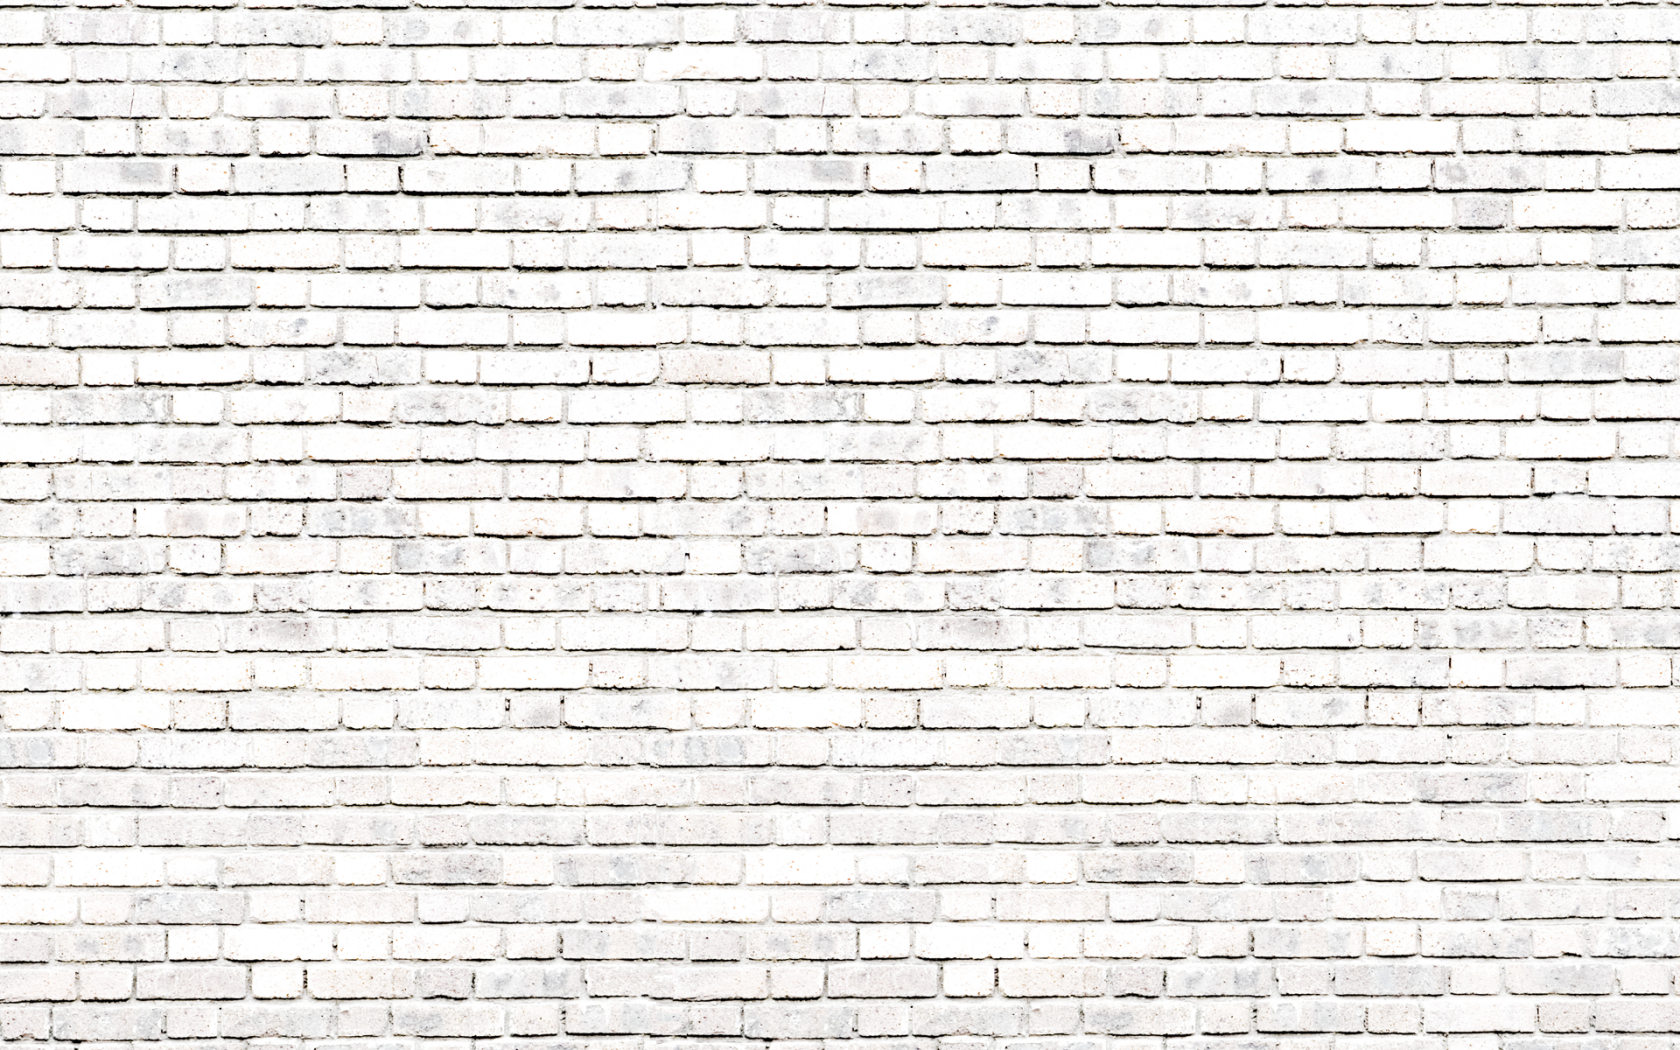 Free Download White Brick Background Hd Hd Wallpapers On Picsfaircom 2000x1200 For Your Desktop Mobile Tablet Explore 46 Brick White Wallpaper Faux Brick Wallpaper Brick Wallpaper Home Depot Wallpaper